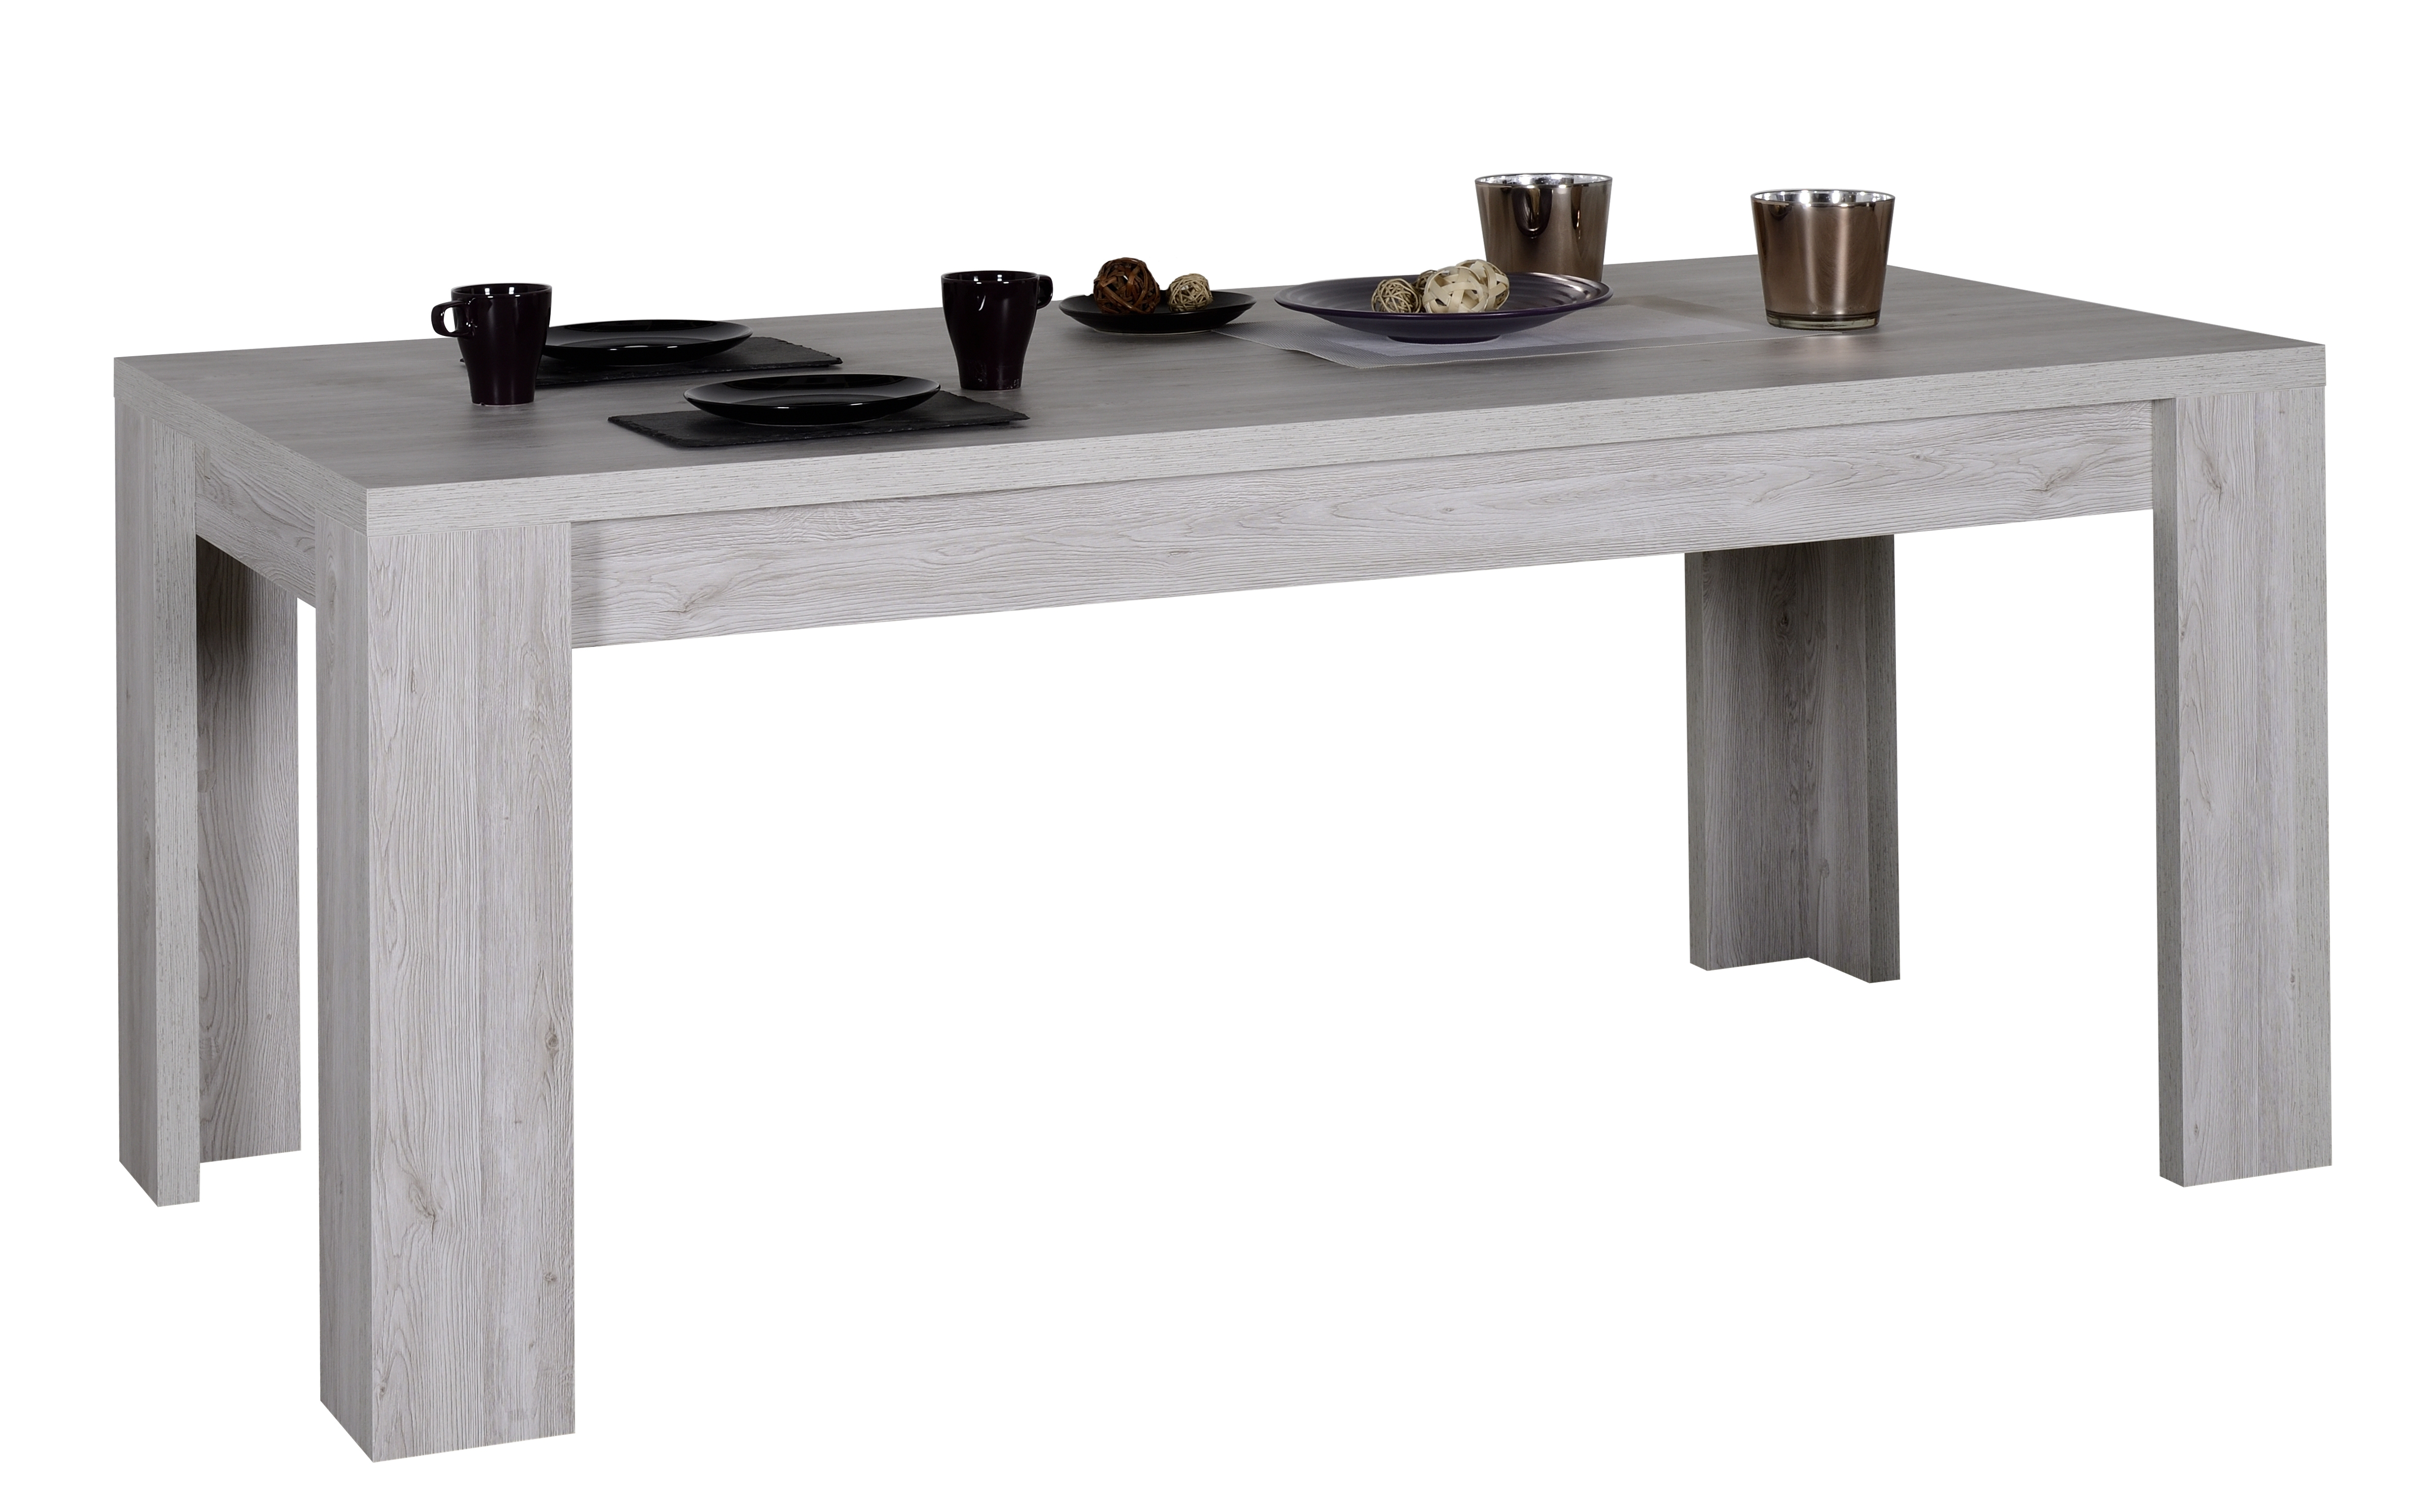 table manger rallonges ch ne gris maeva 180 260 cm. Black Bedroom Furniture Sets. Home Design Ideas